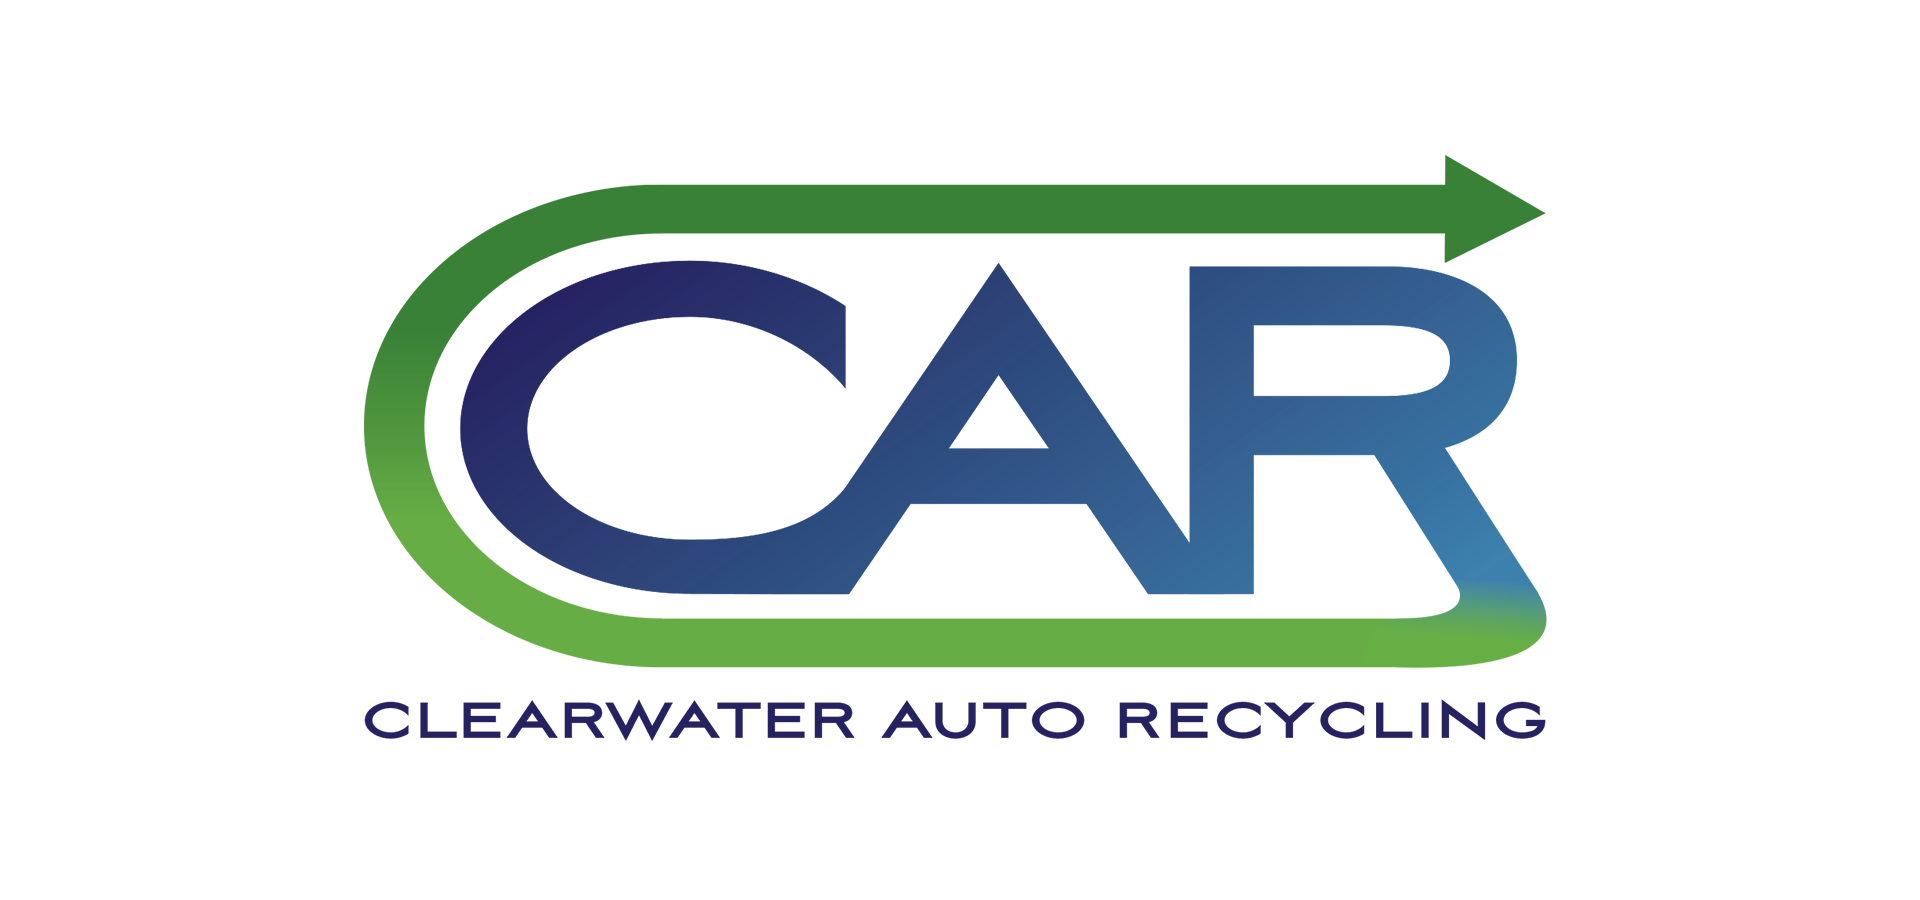 Clearwater Auto Recycling Logo